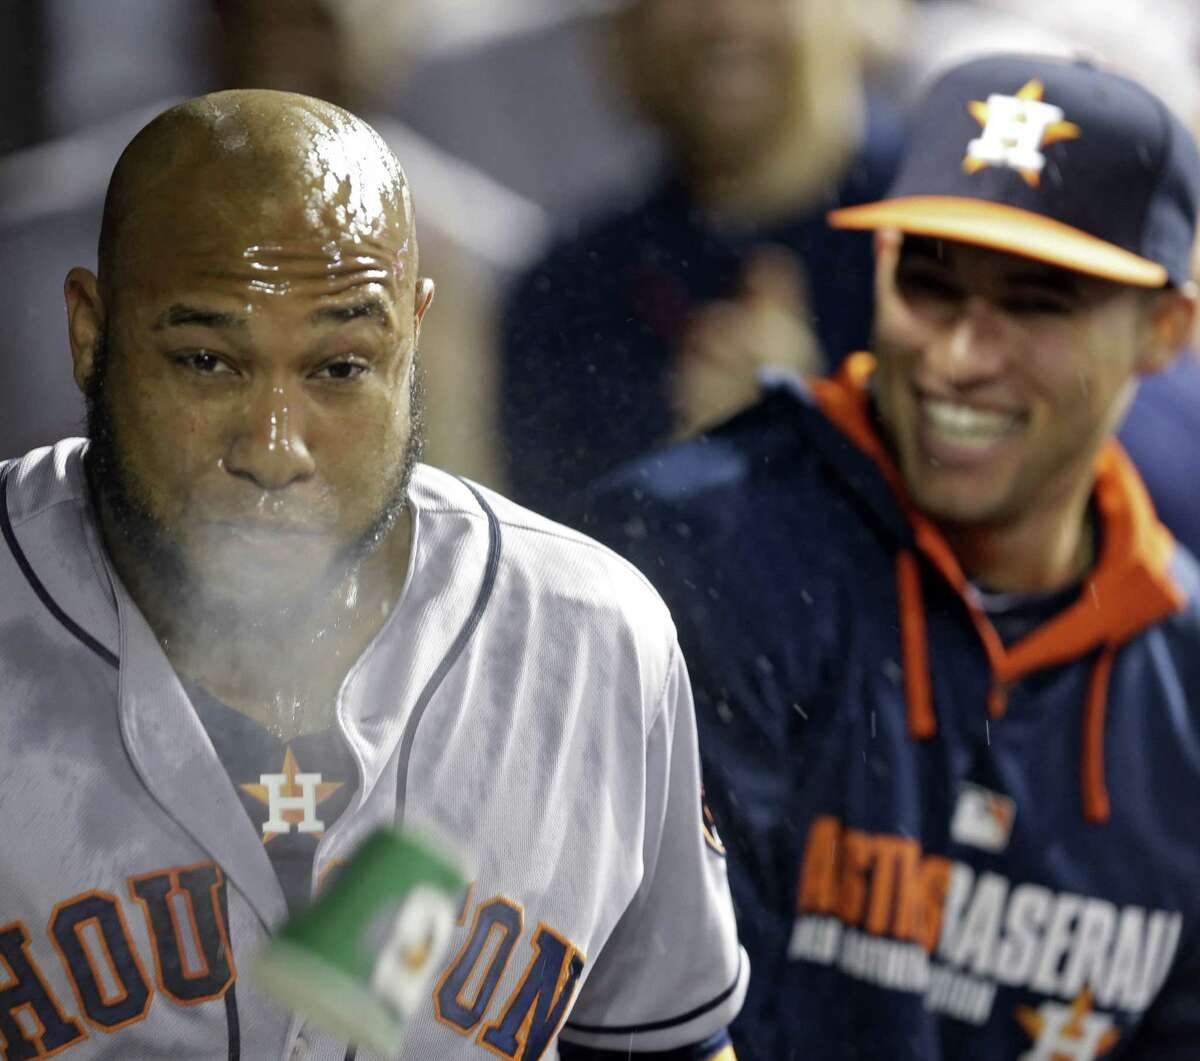 Jon Singleton spits water after his three-run homer in the ninth inning helped the Astros to victory in Cleveland. The game was tied 1-1 before the frame.